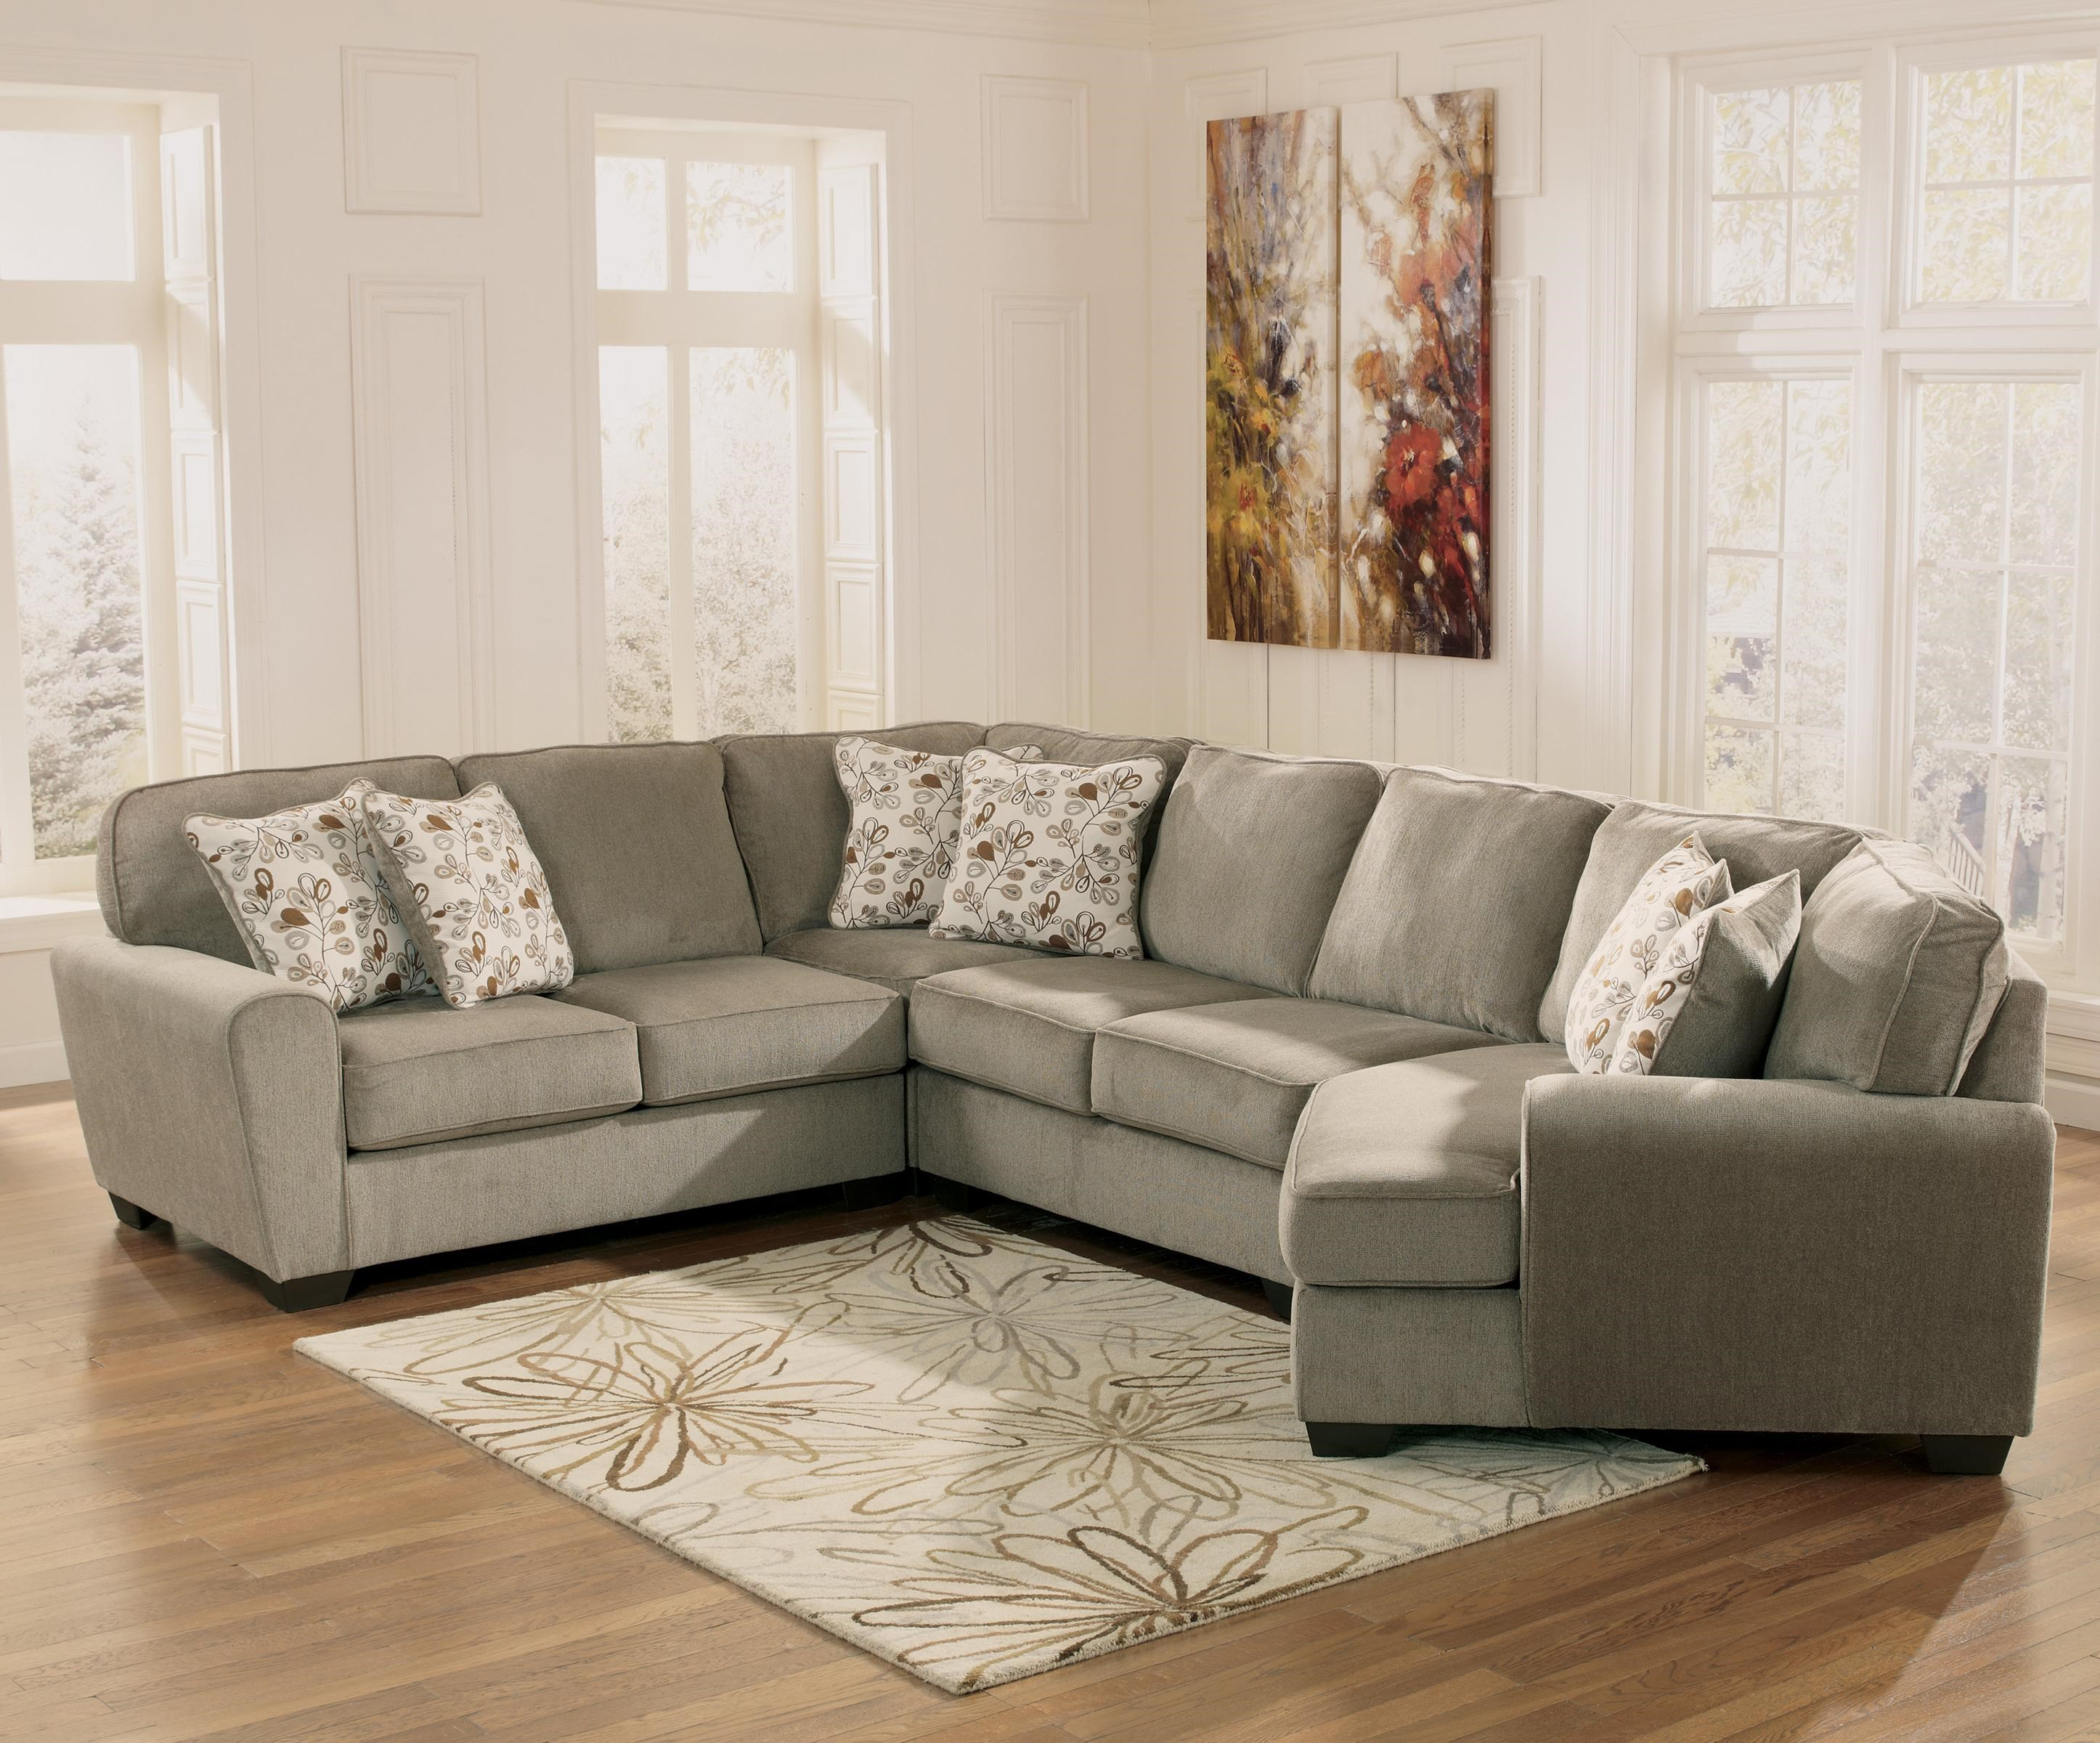 Ashley Furniture Patola Park - Patina 4-Piece Small Sectional with Right Cuddler - Prime Brothers Furniture - Sofa Sectional : left cuddler sectional - Sectionals, Sofas & Couches